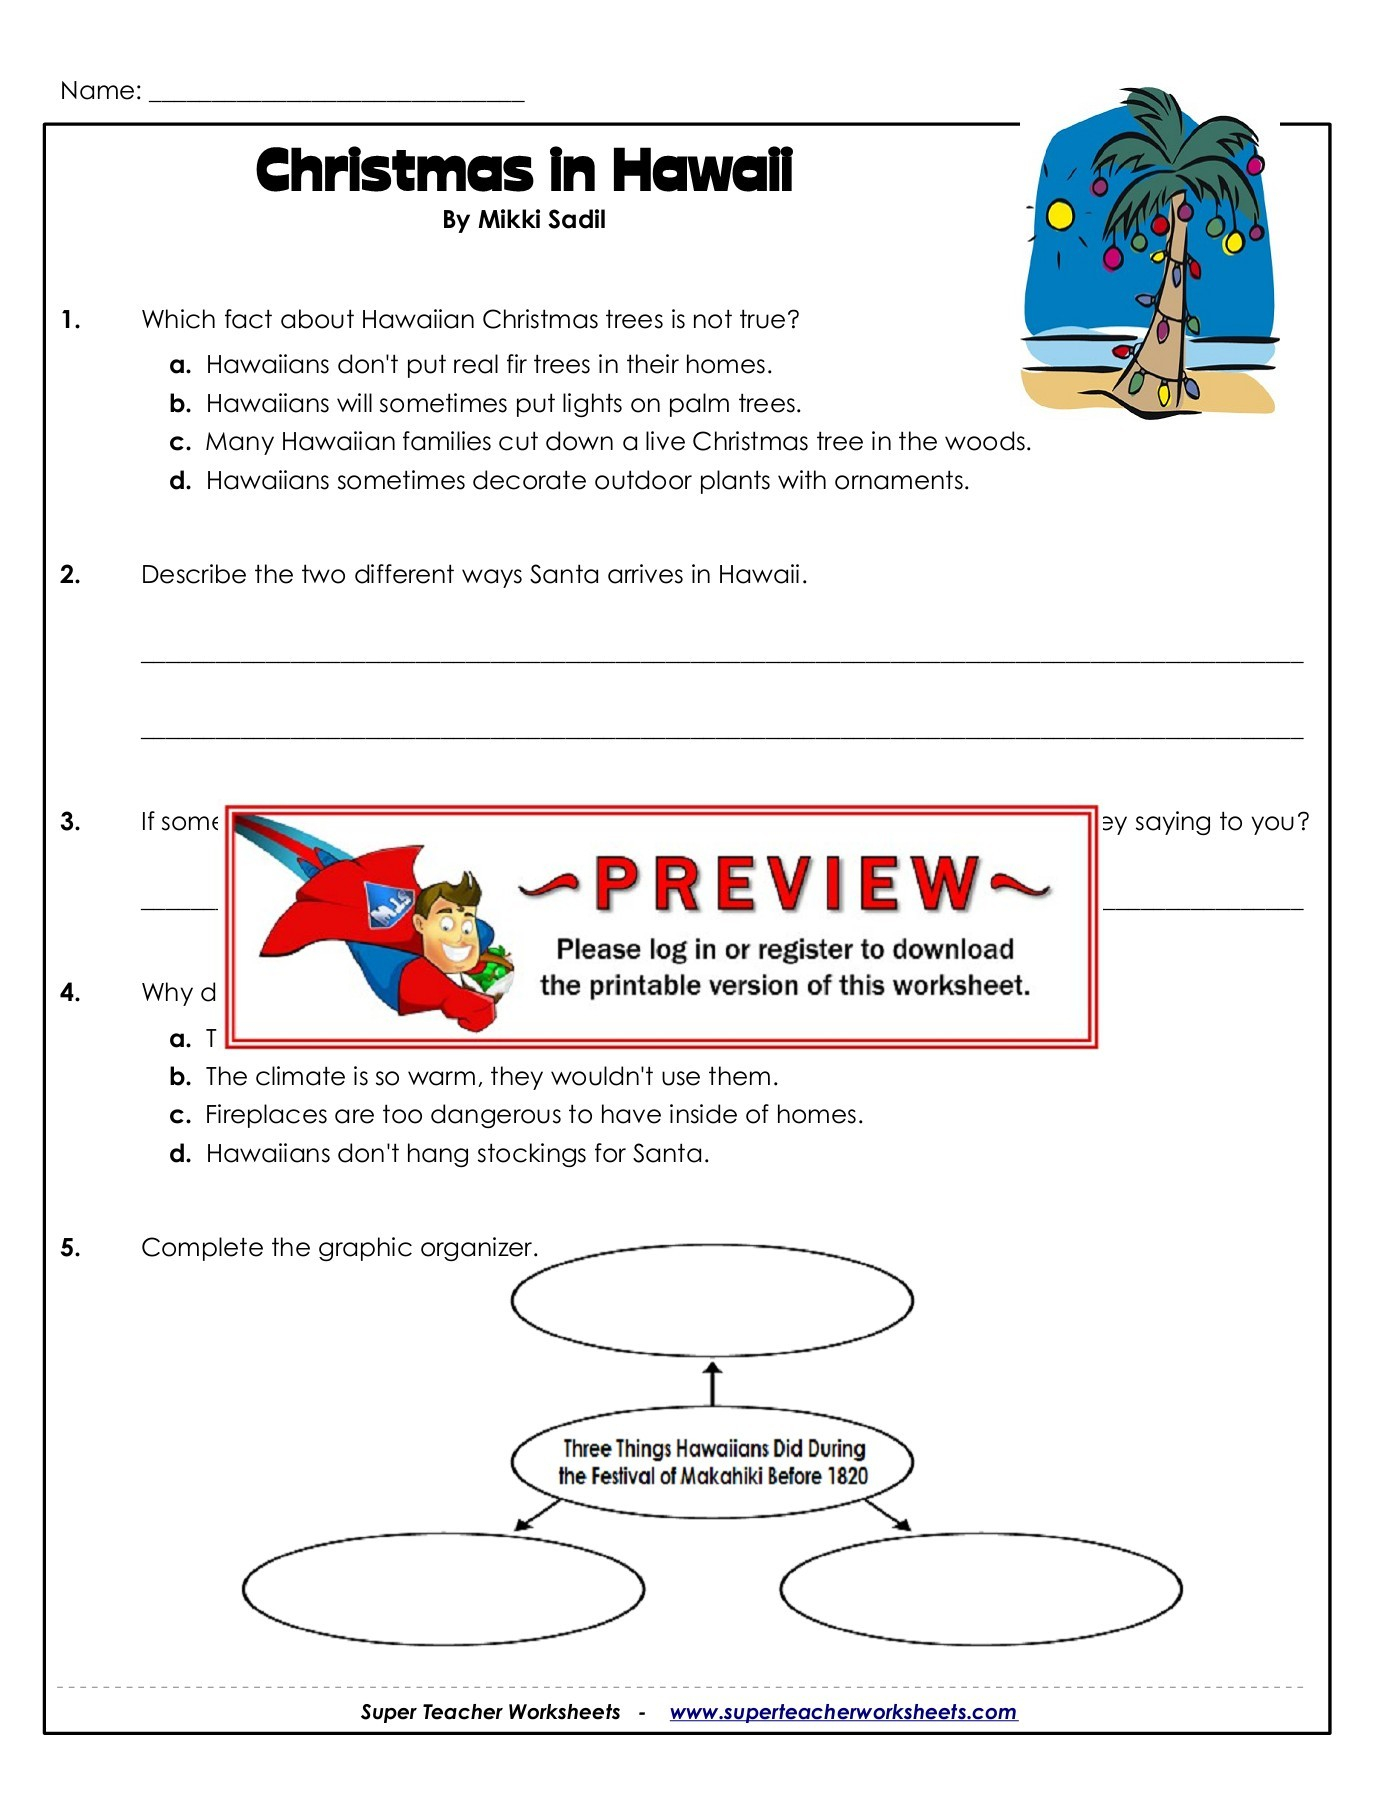 Super Teacher Worksheets Christmas Scavenger Hunt Answers